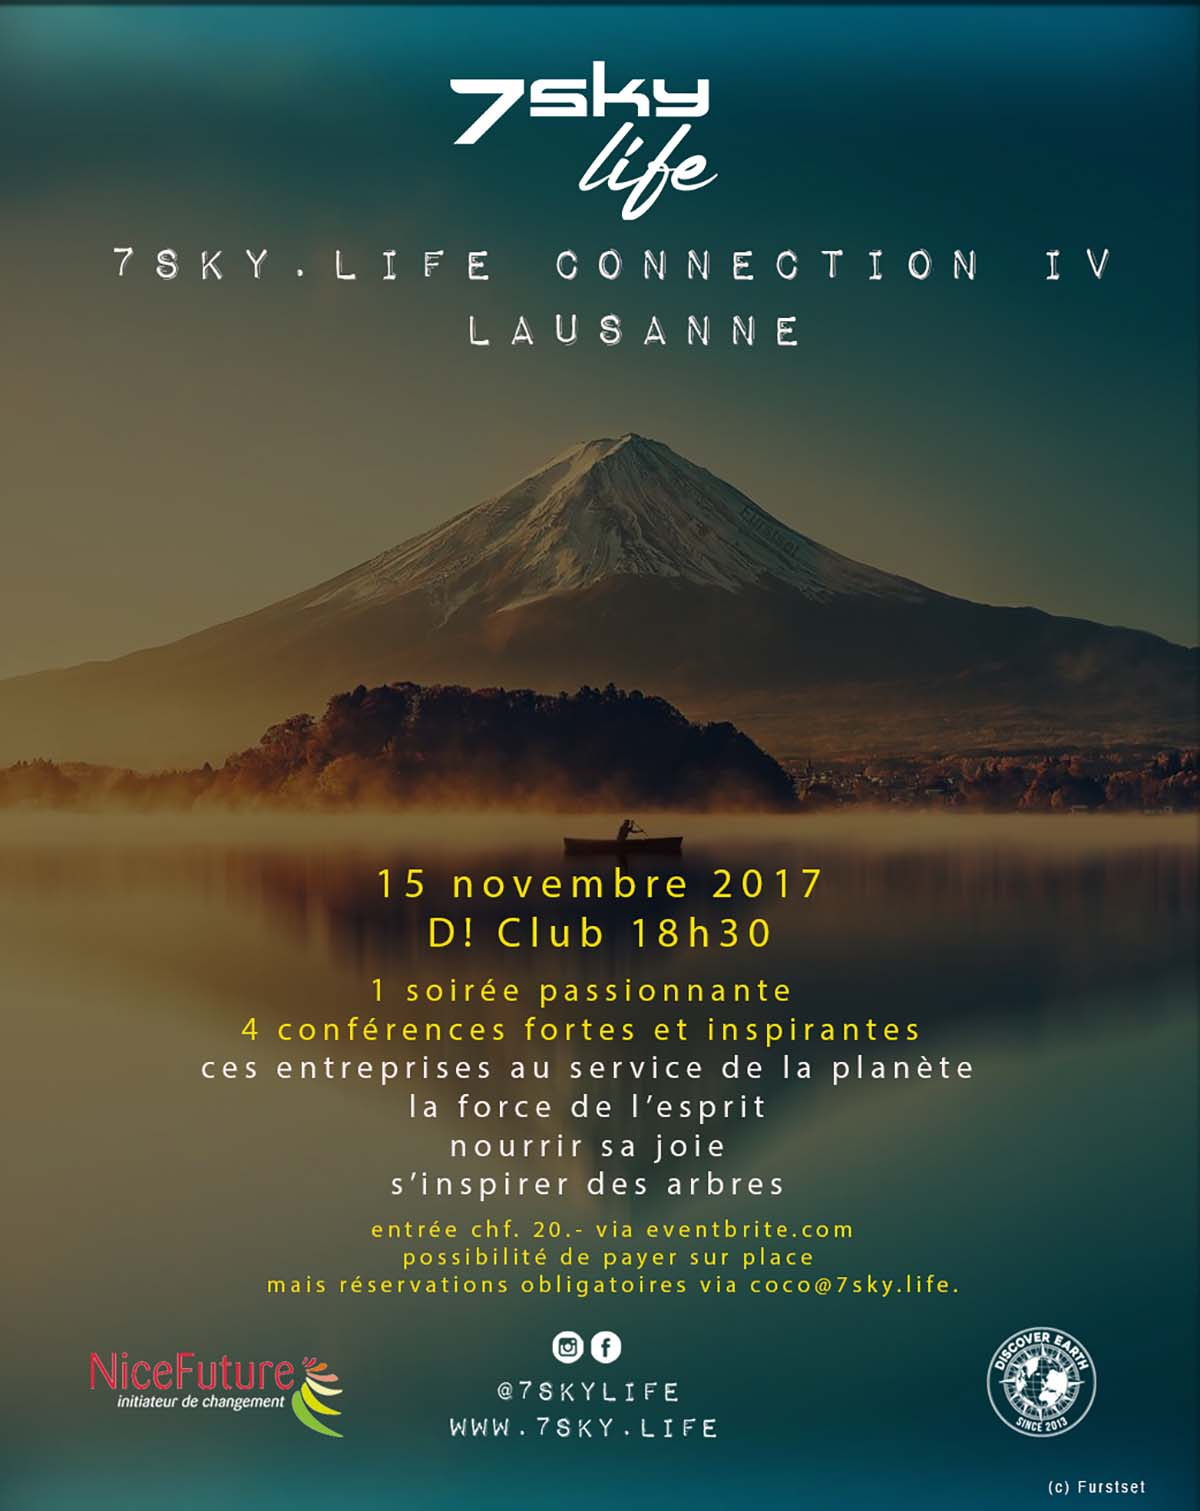 7sky.life Connection IV Lausanne – 15 novembre D!